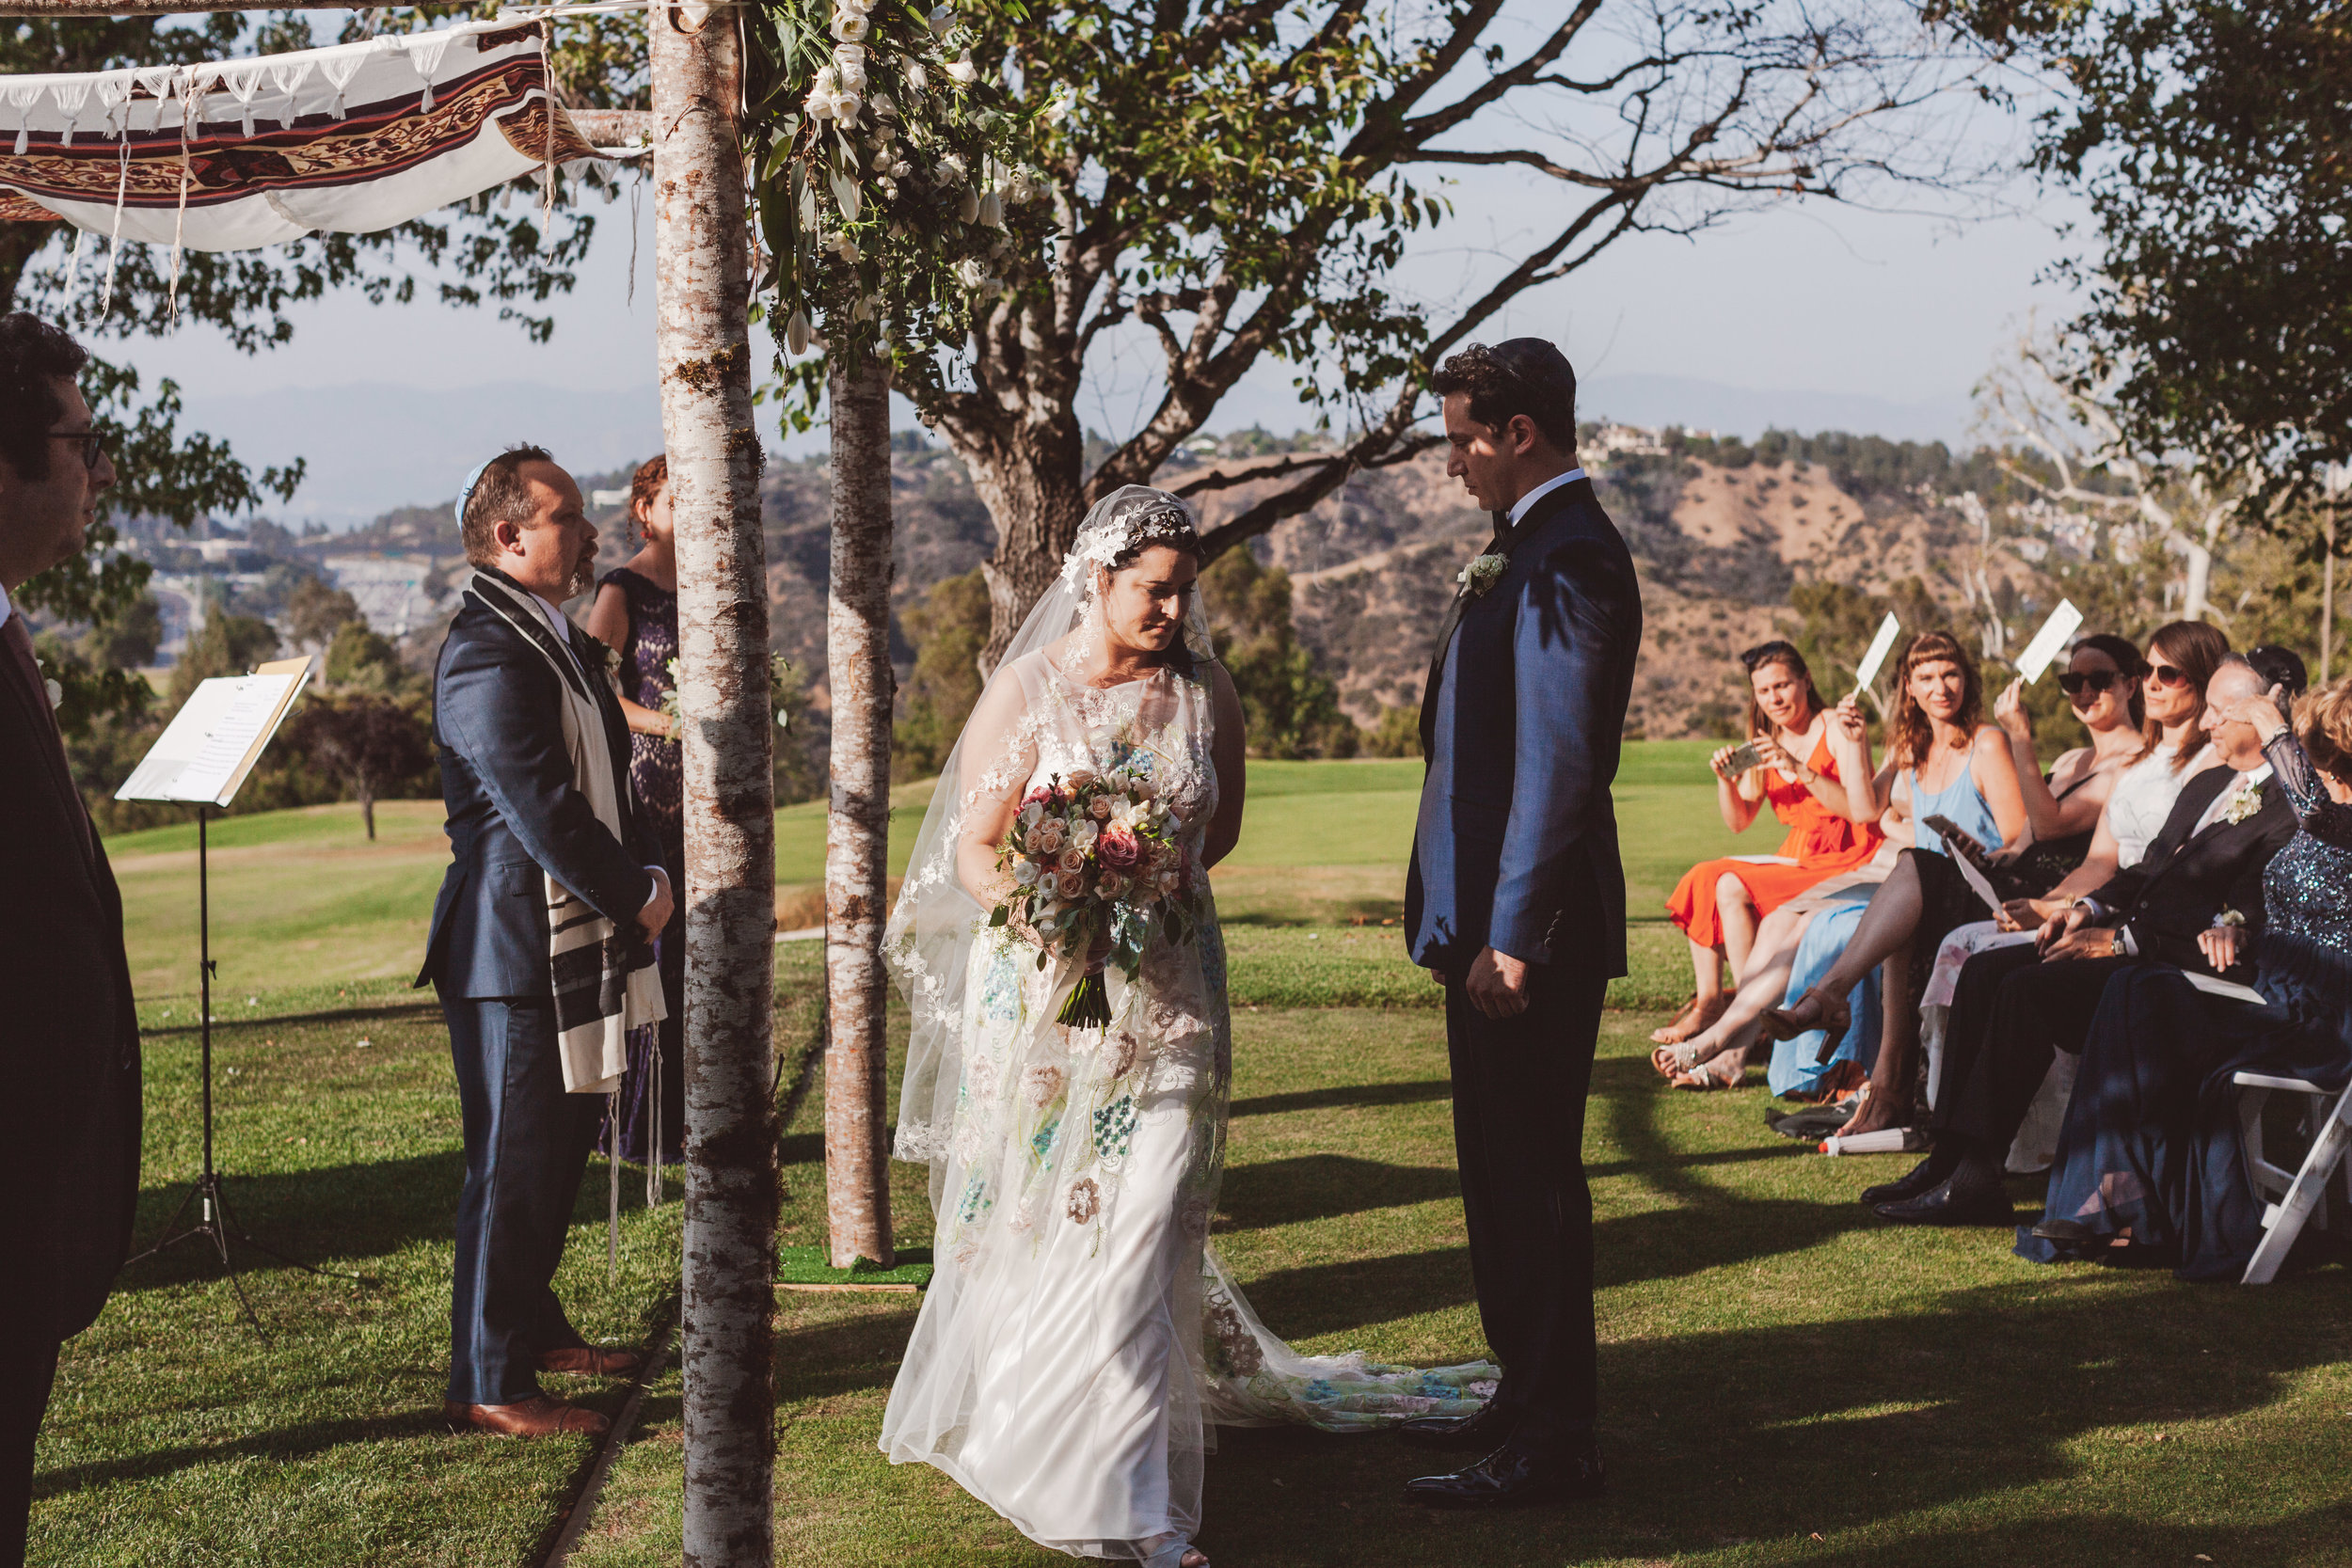 Hakafot , bride circling the groom at MountainGate Country Club, Los Angeles, CA. Photographer:  Steve Cowell,  Florals: Sonny Alexander